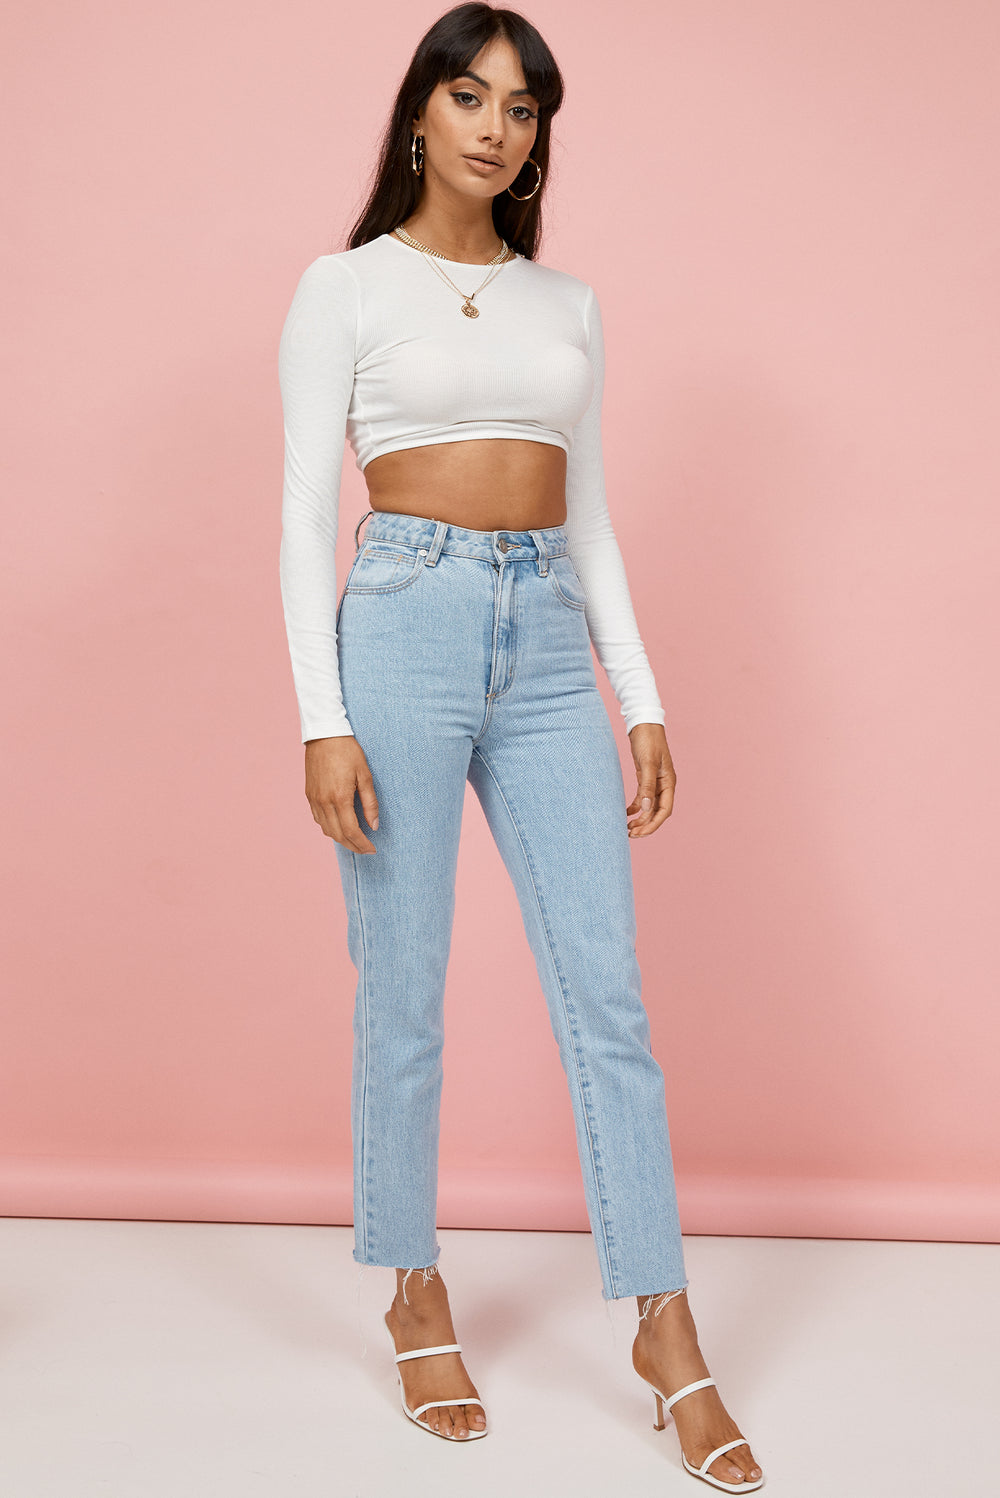 long sleeve crop top, white crop top, backless crop top